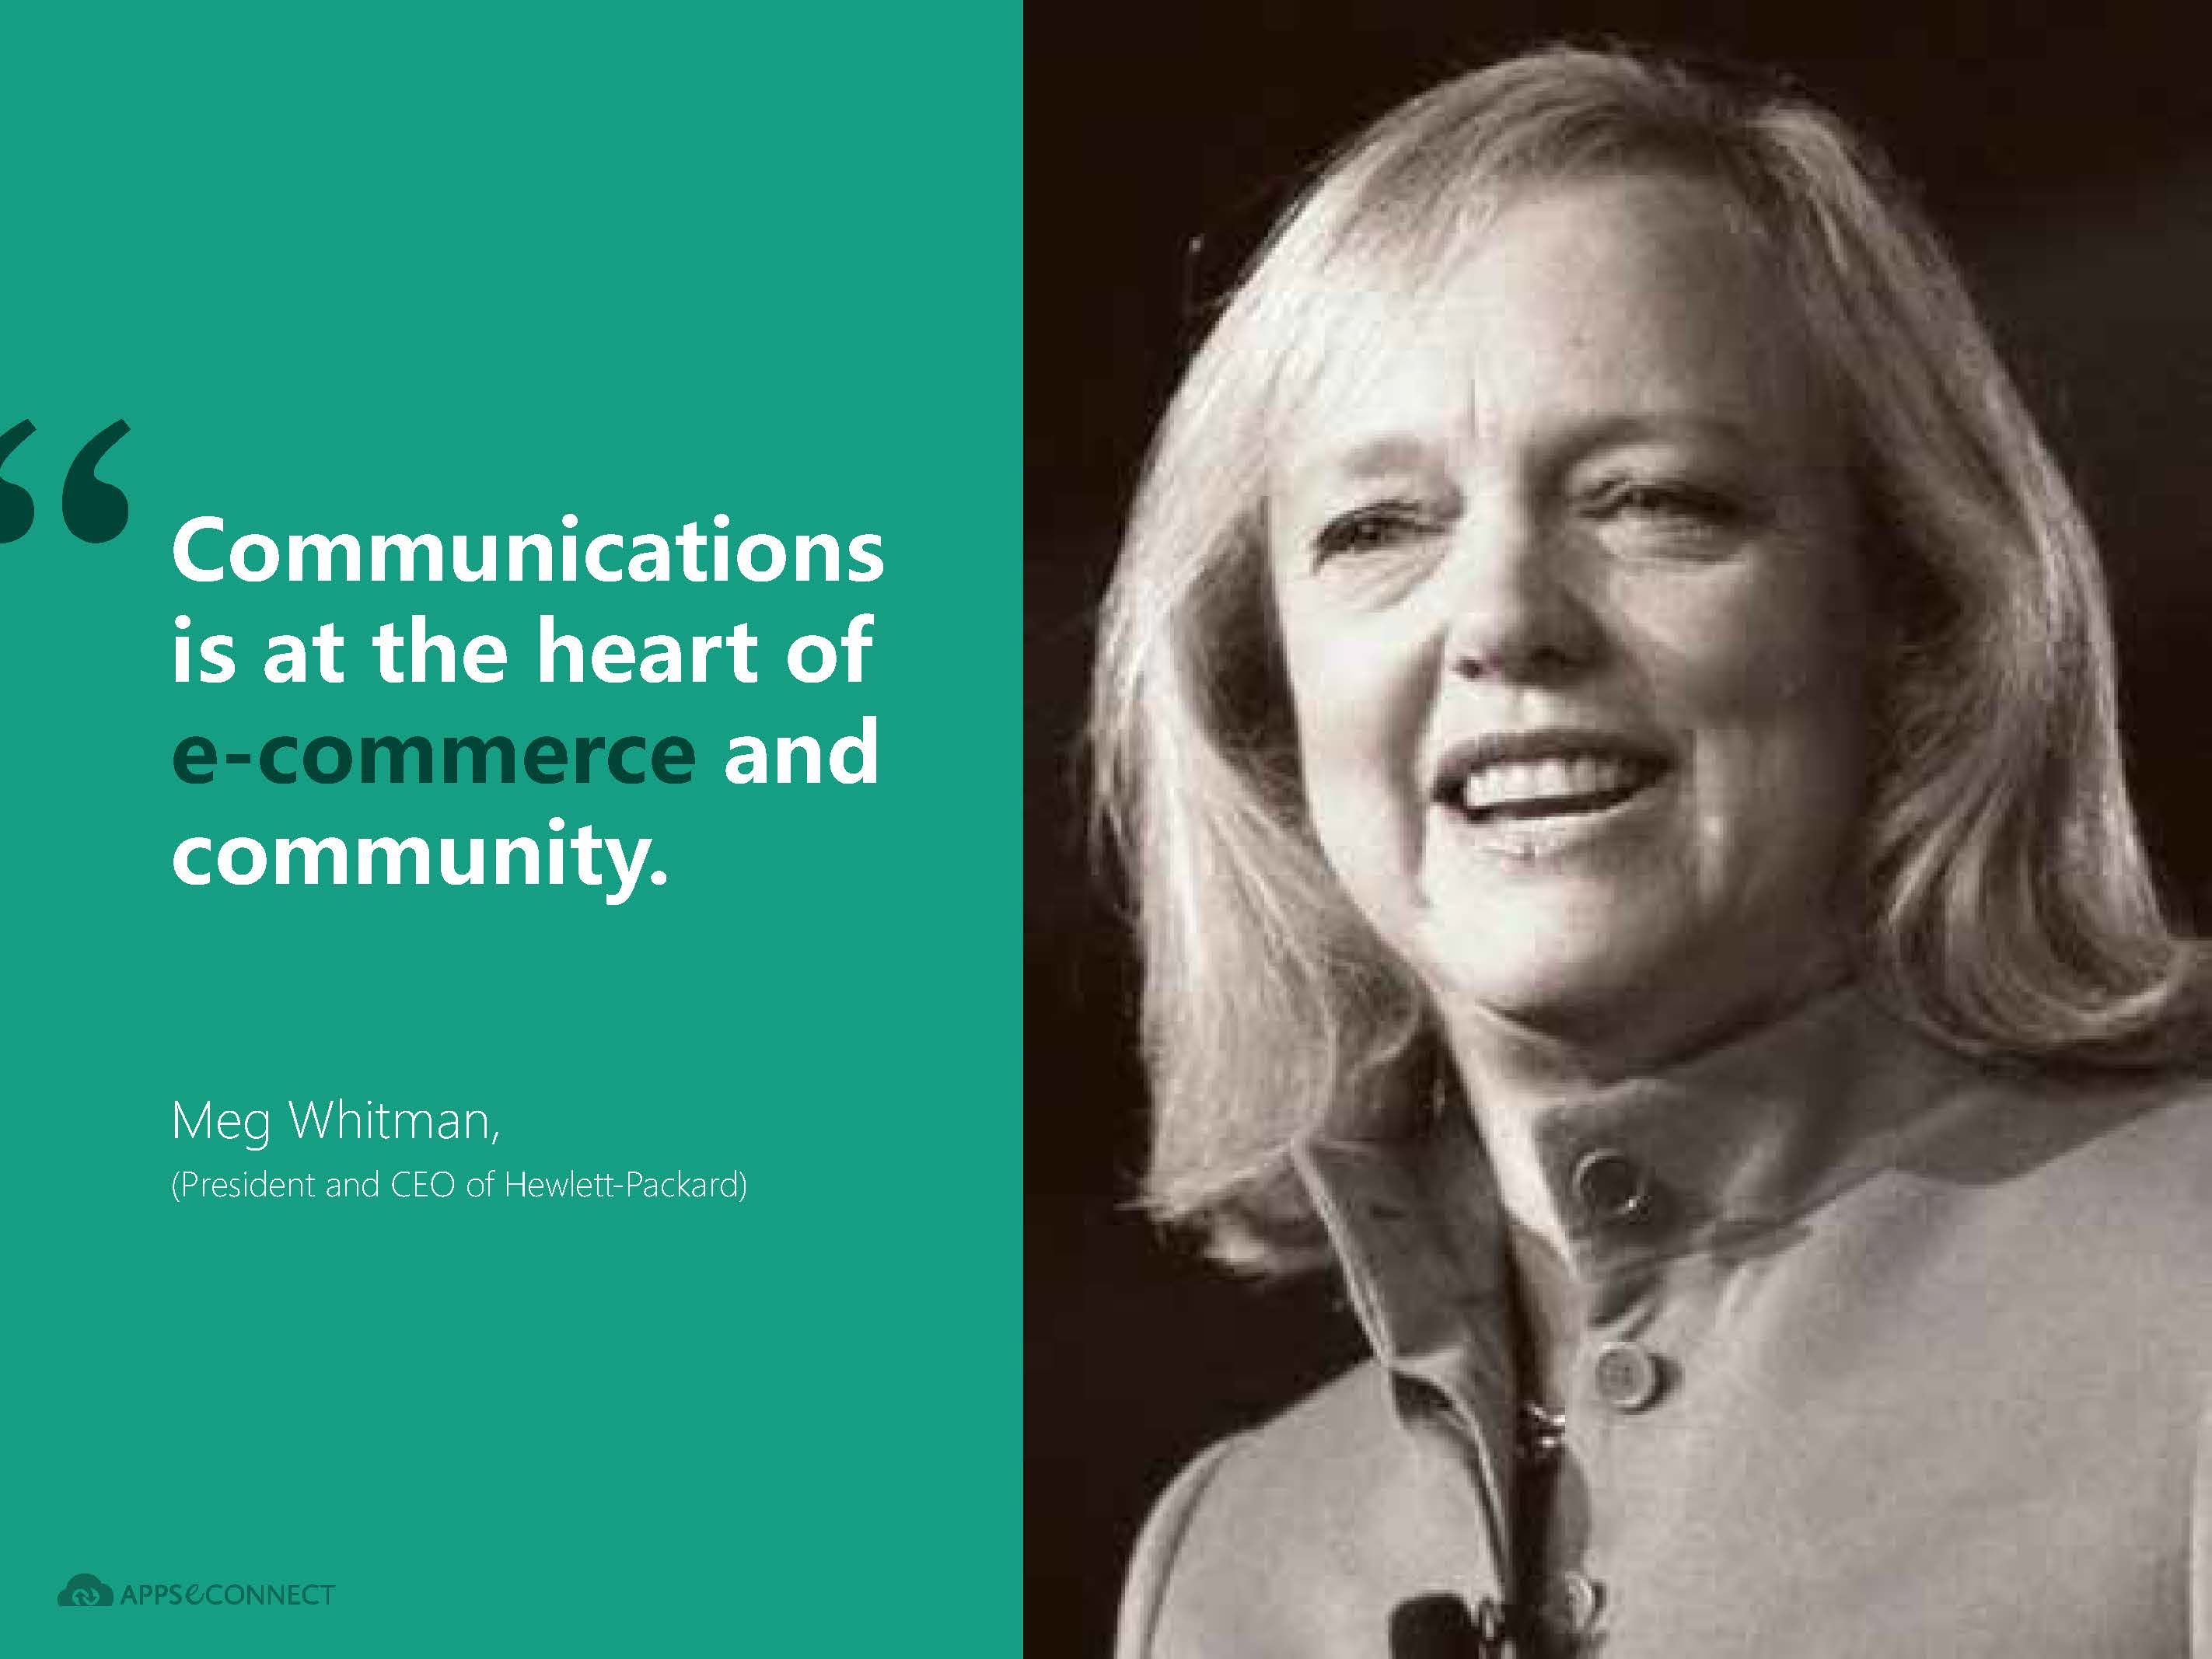 Quotes from megwhitman president and ceo hp